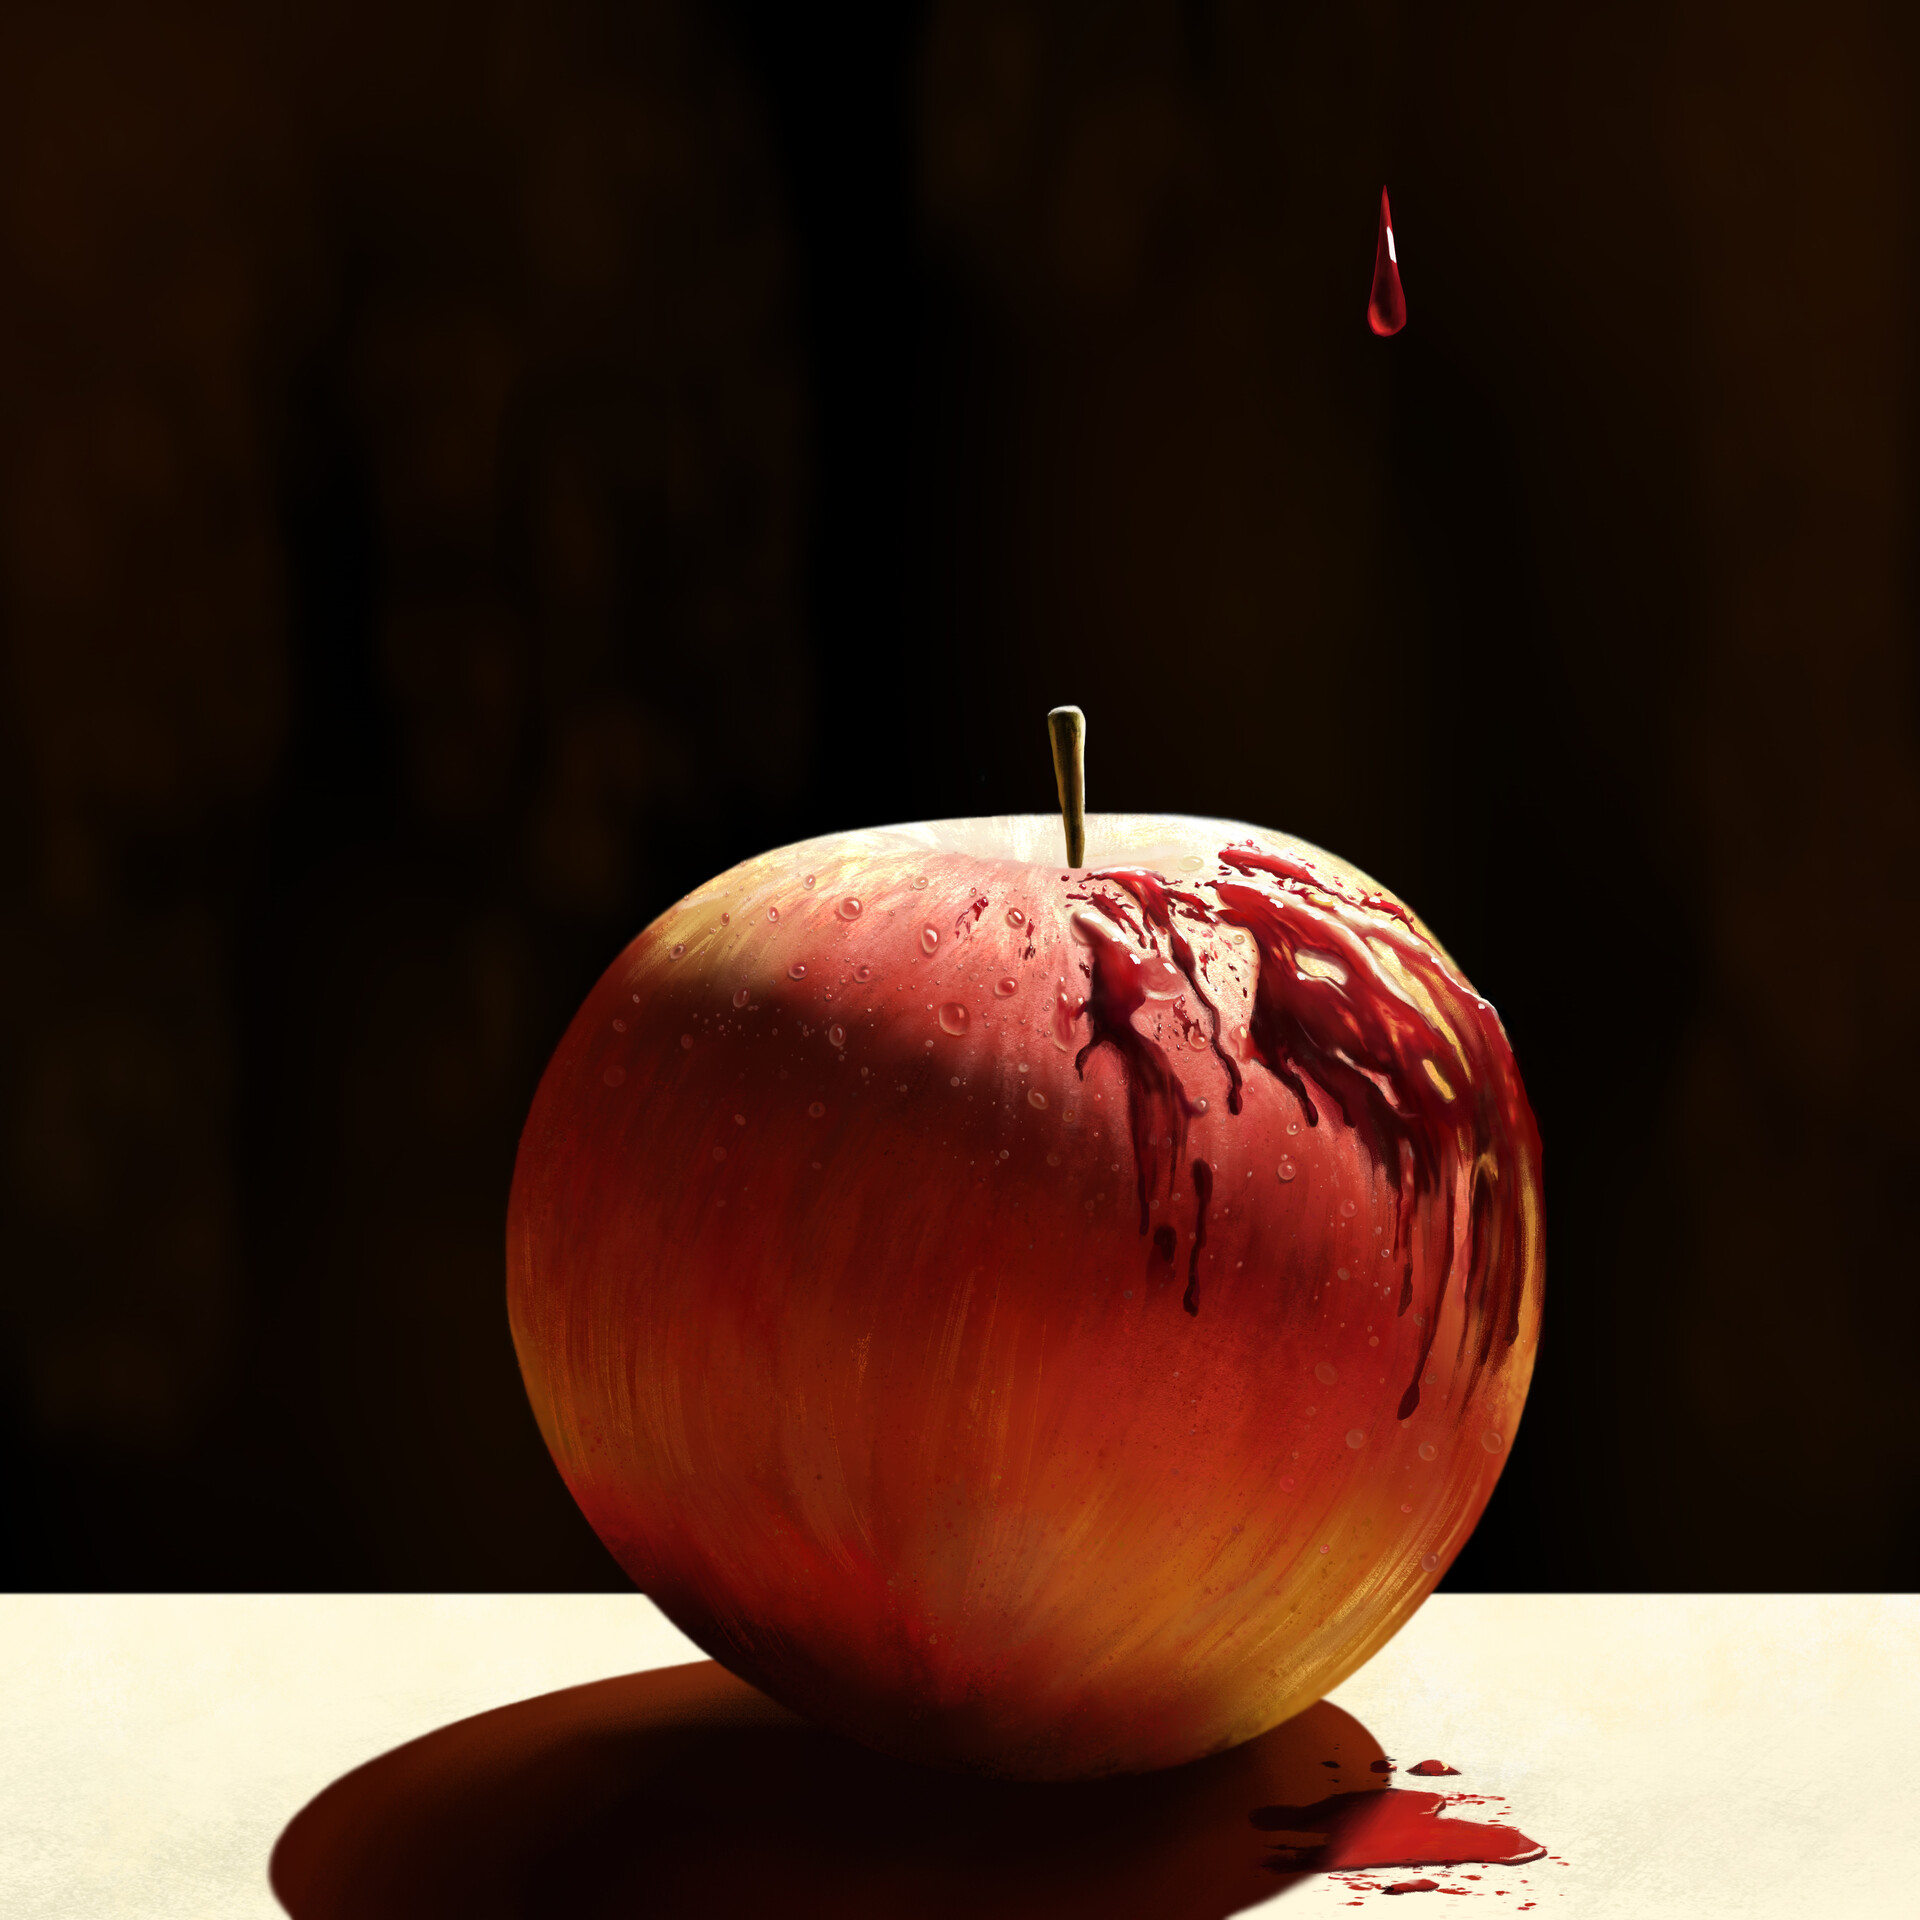 focusing on the interaction between the skin of an apple, dew drops, and dripping blood